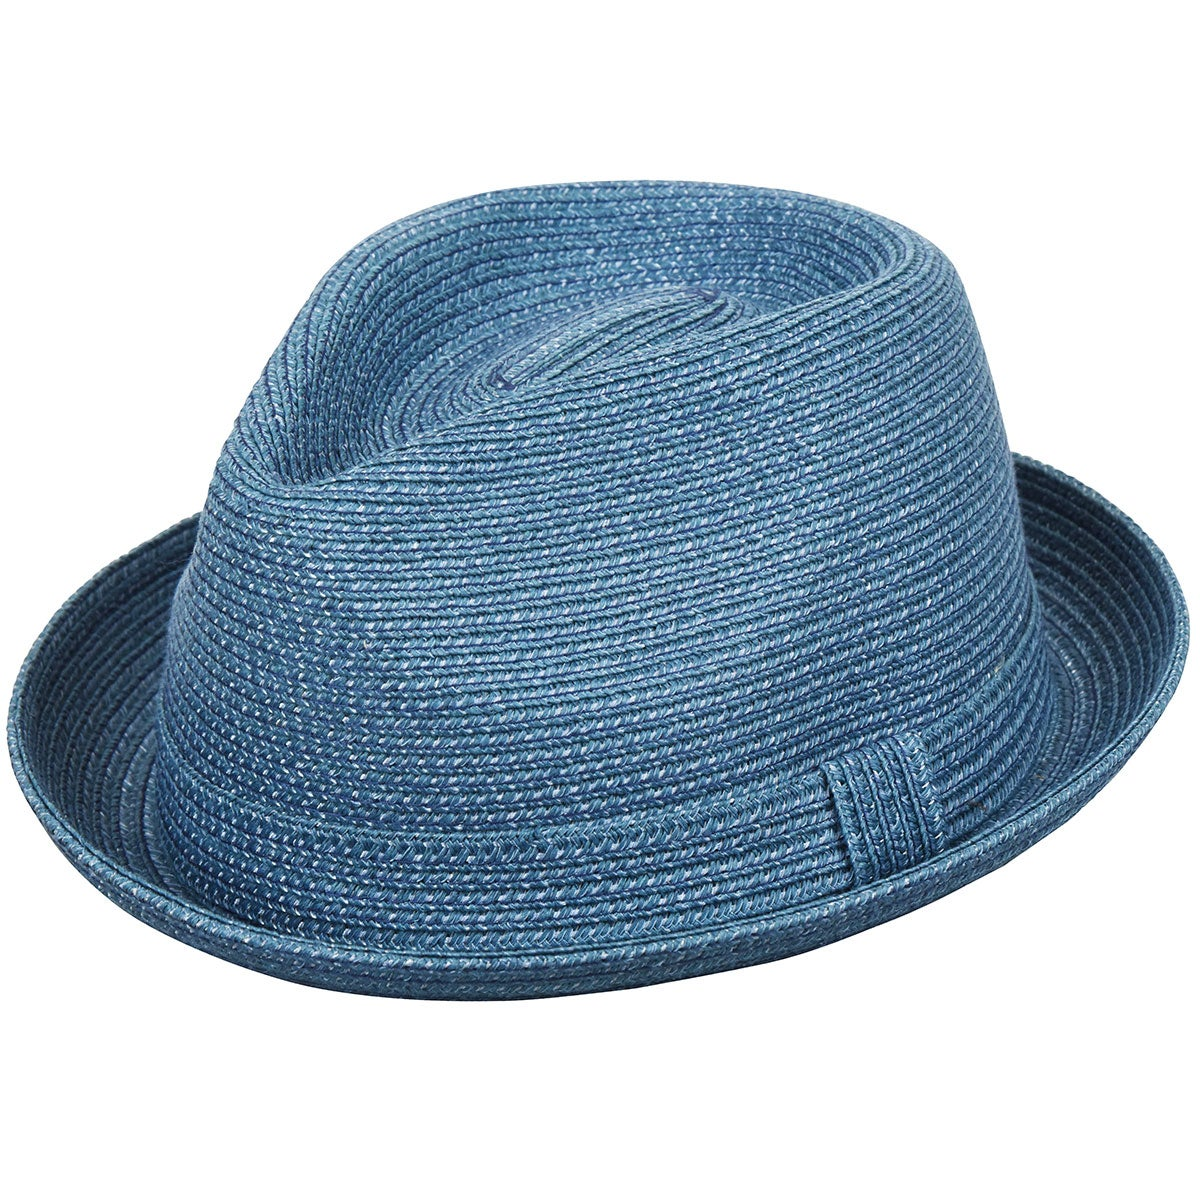 1960s – 70s Style Men's Hats Joey Braided Fedora $43.00 AT vintagedancer.com